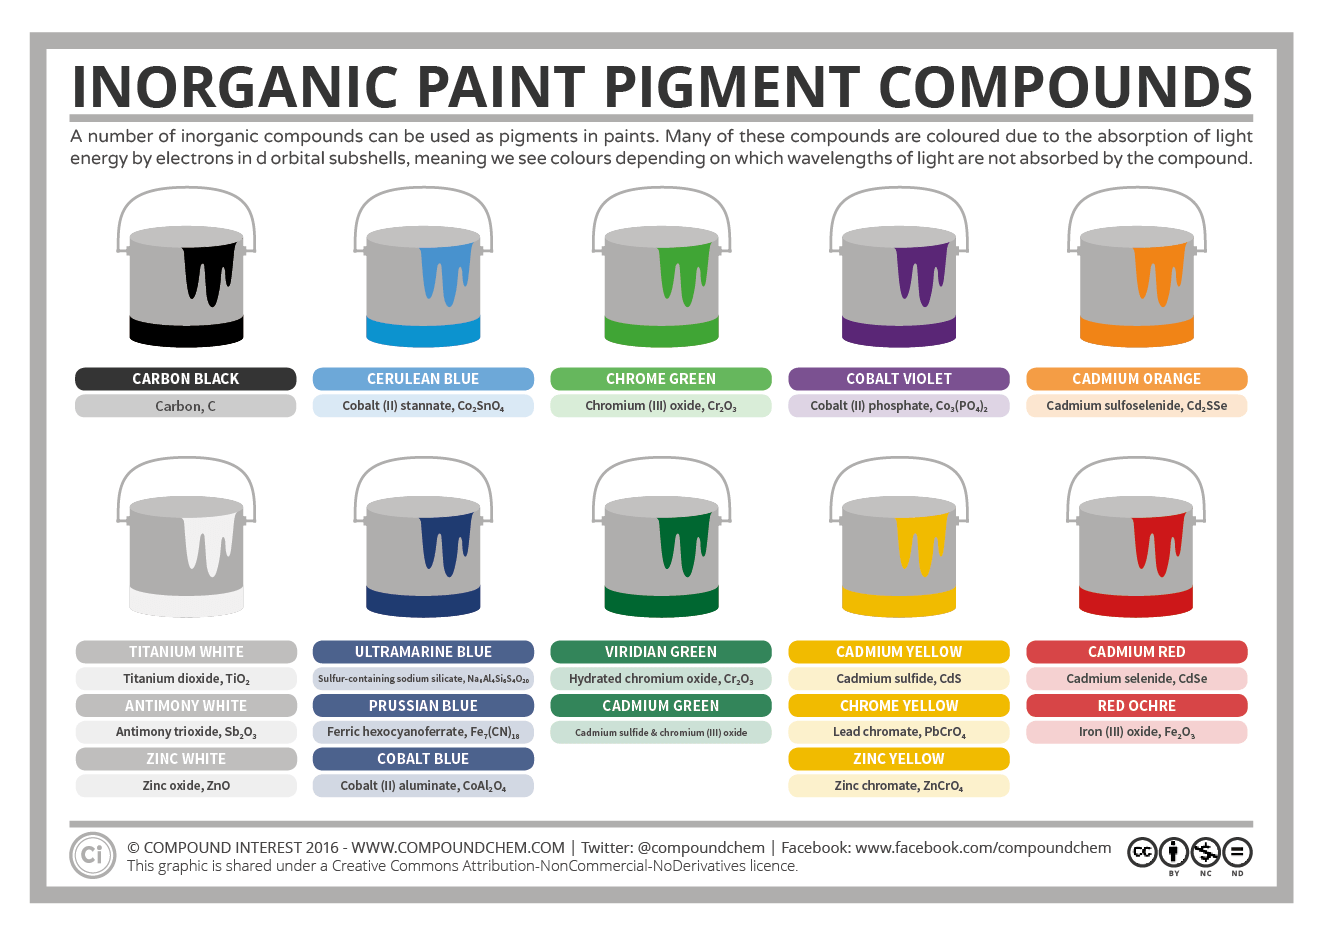 Inorganic Pigment Compounds The Chemistry Of Paint